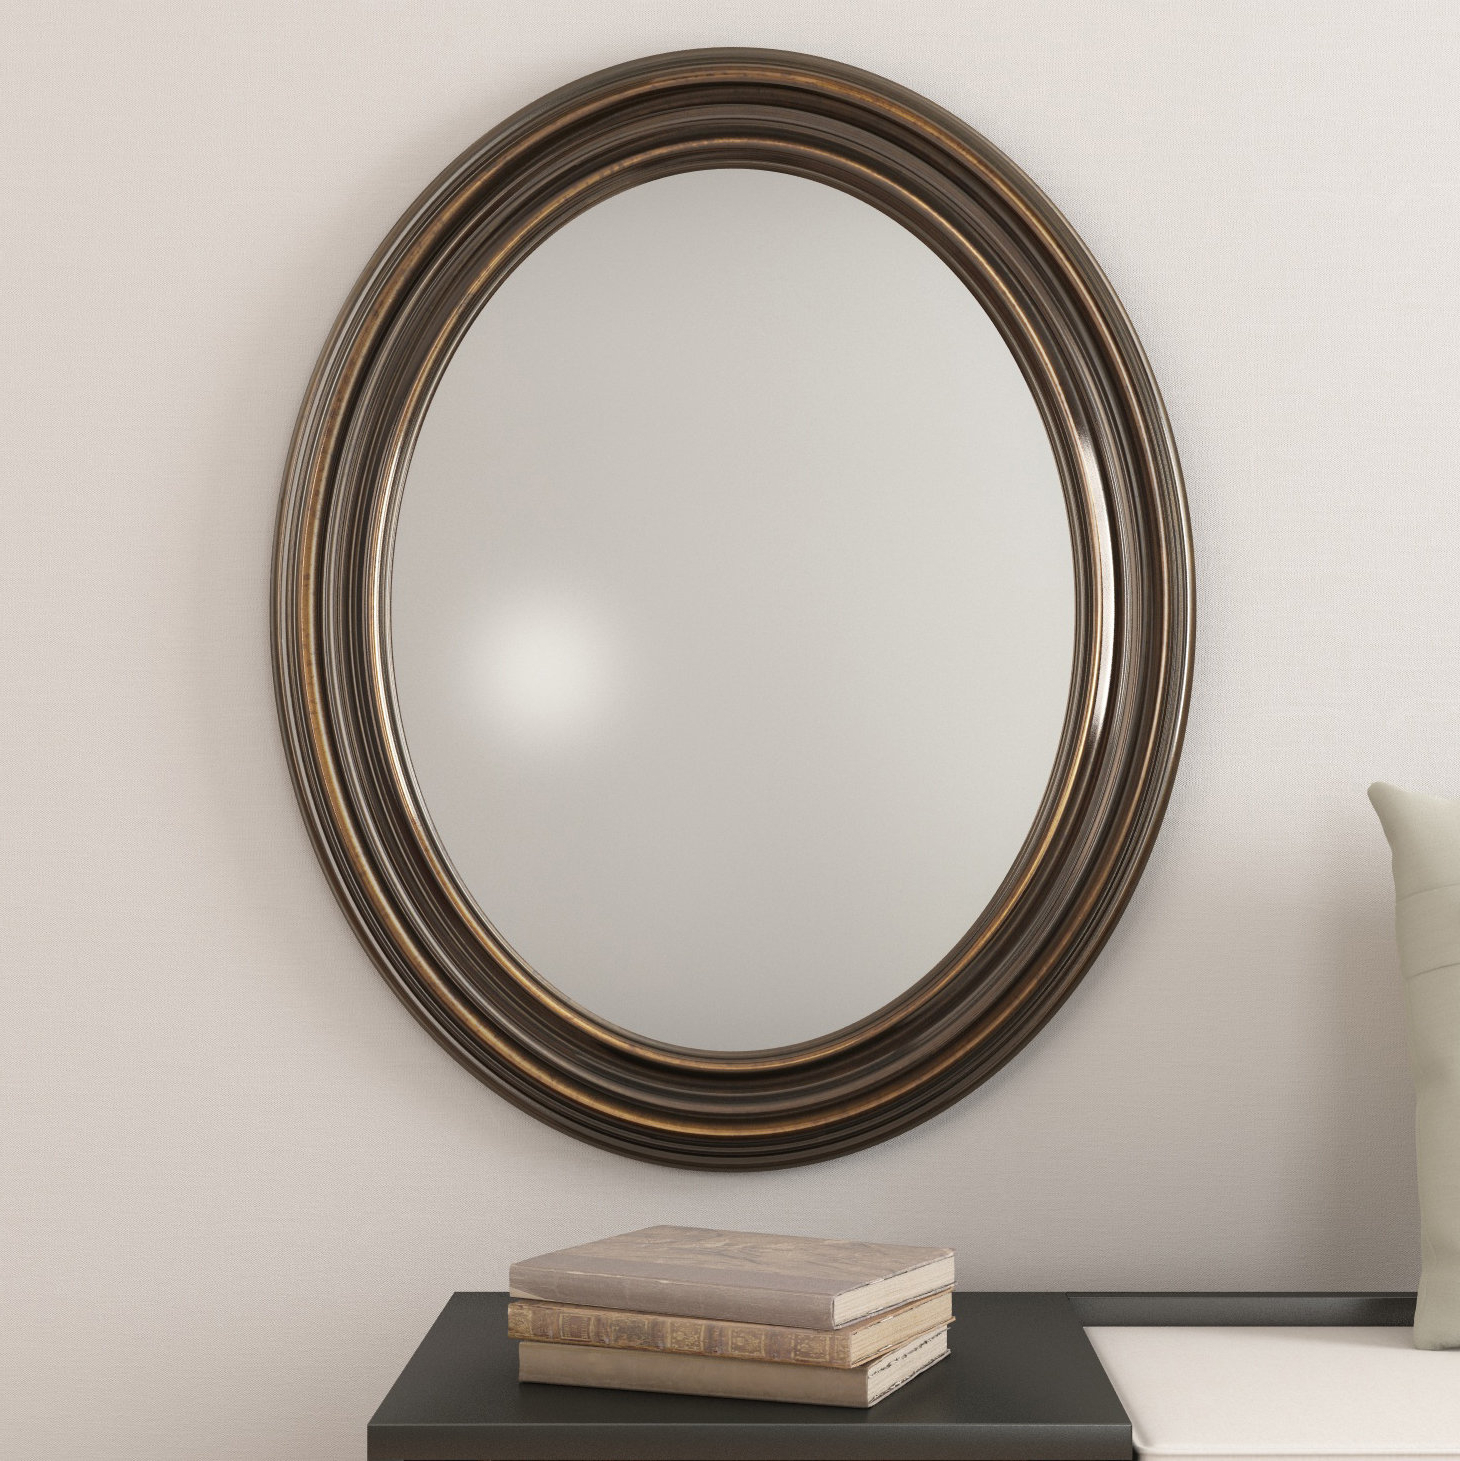 Most Popular Burnes Oval Traditional Wall Mirror Intended For Pfister Oval Wood Wall Mirrors (View 9 of 20)